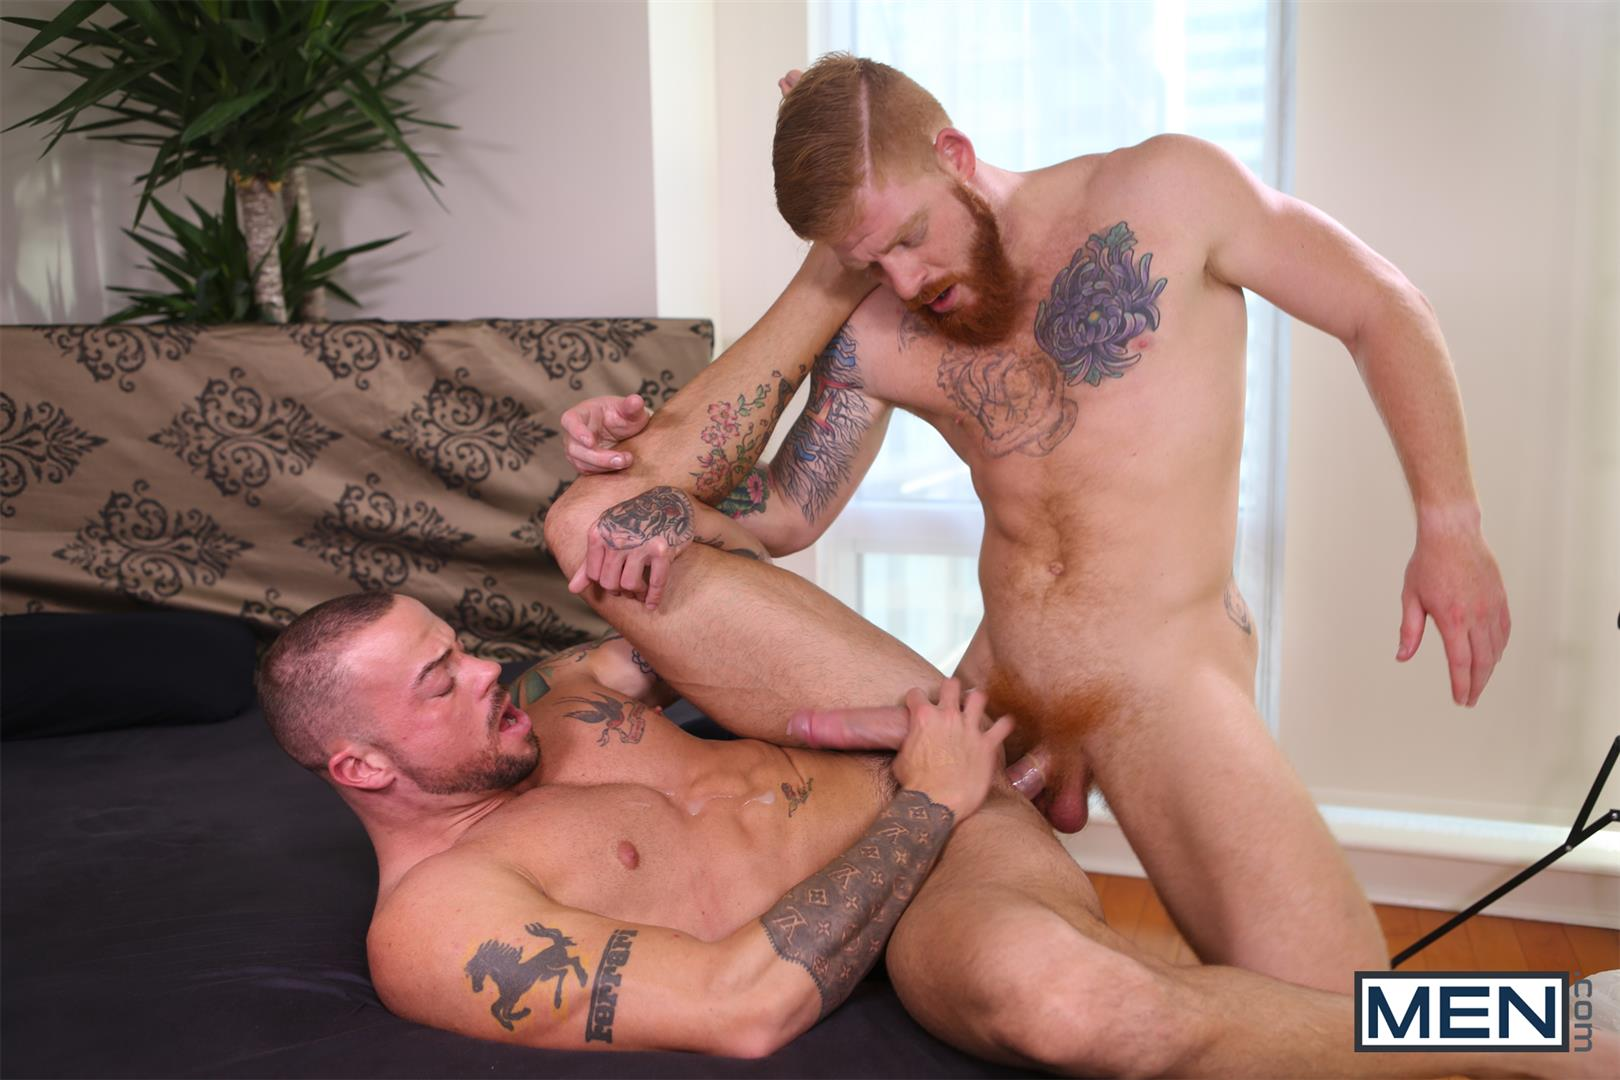 Men Bennett Anthony and Sean Duran Naked Redhead Muscle Guys Fucking Amateur Gay Porn 15 Bennett Anthony Fucking A Muscle Hunk With His Big Ginger Cock